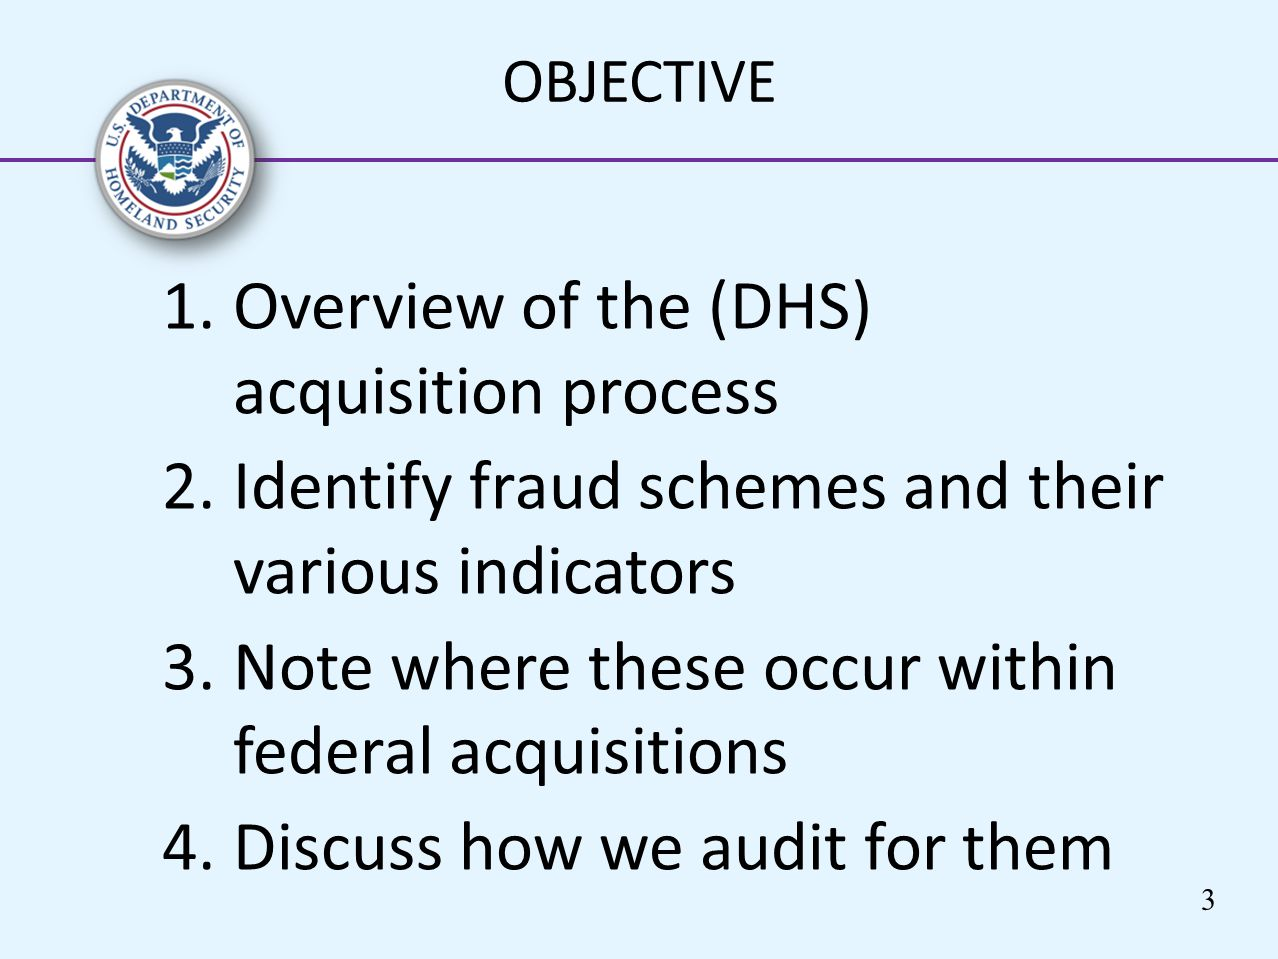 Overview of the (DHS) acquisition process